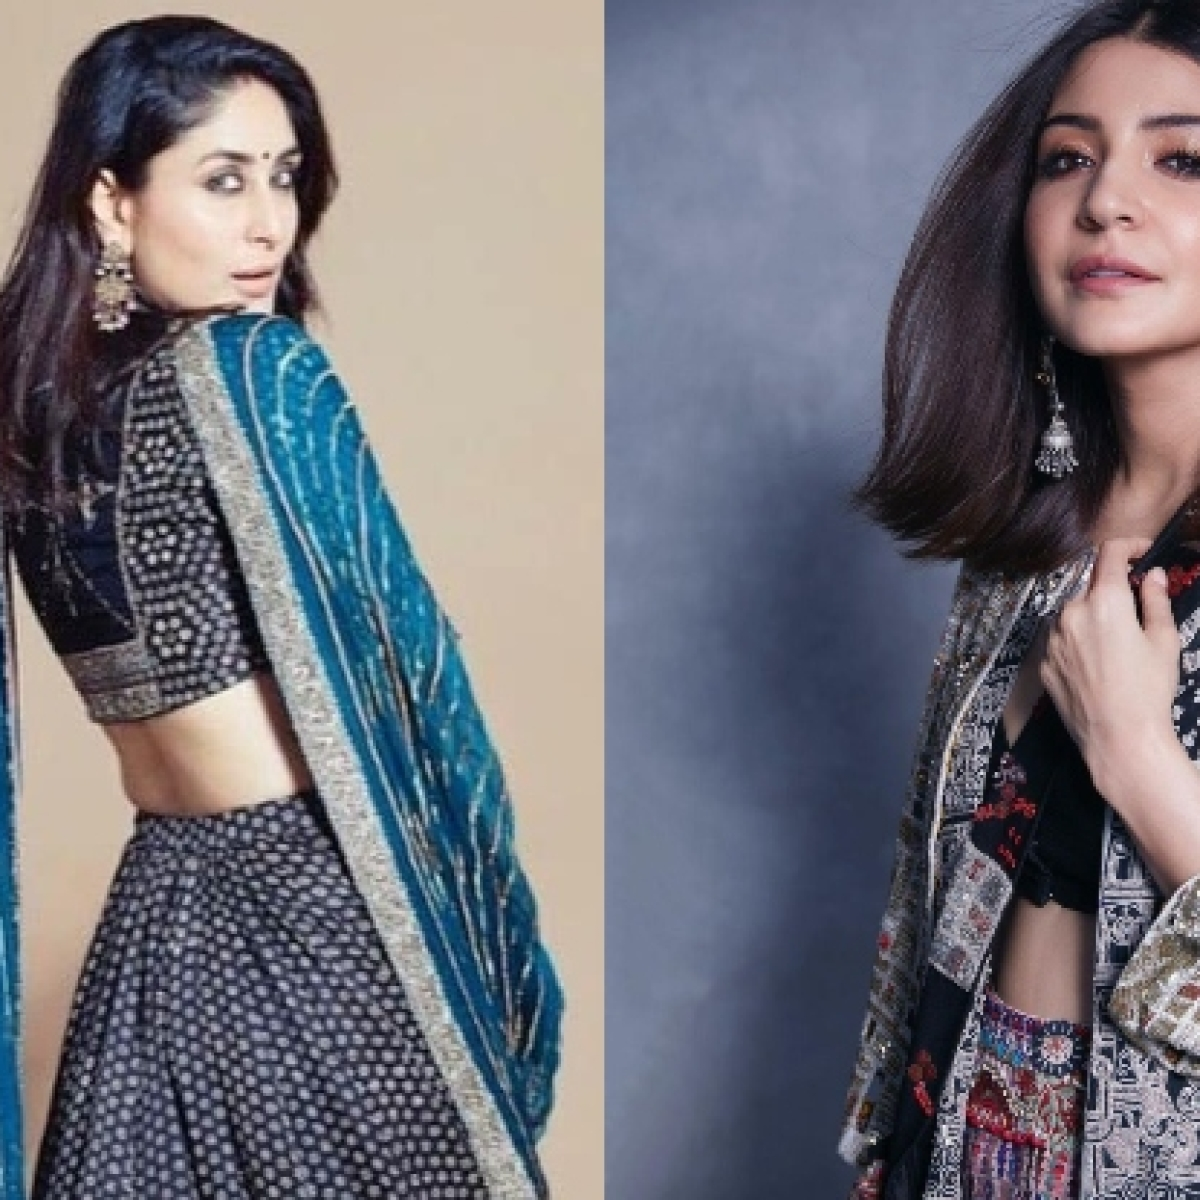 Dussehra 2020: Want to put your best fashion foot forward this year? Take cues from these Bollywood beauties